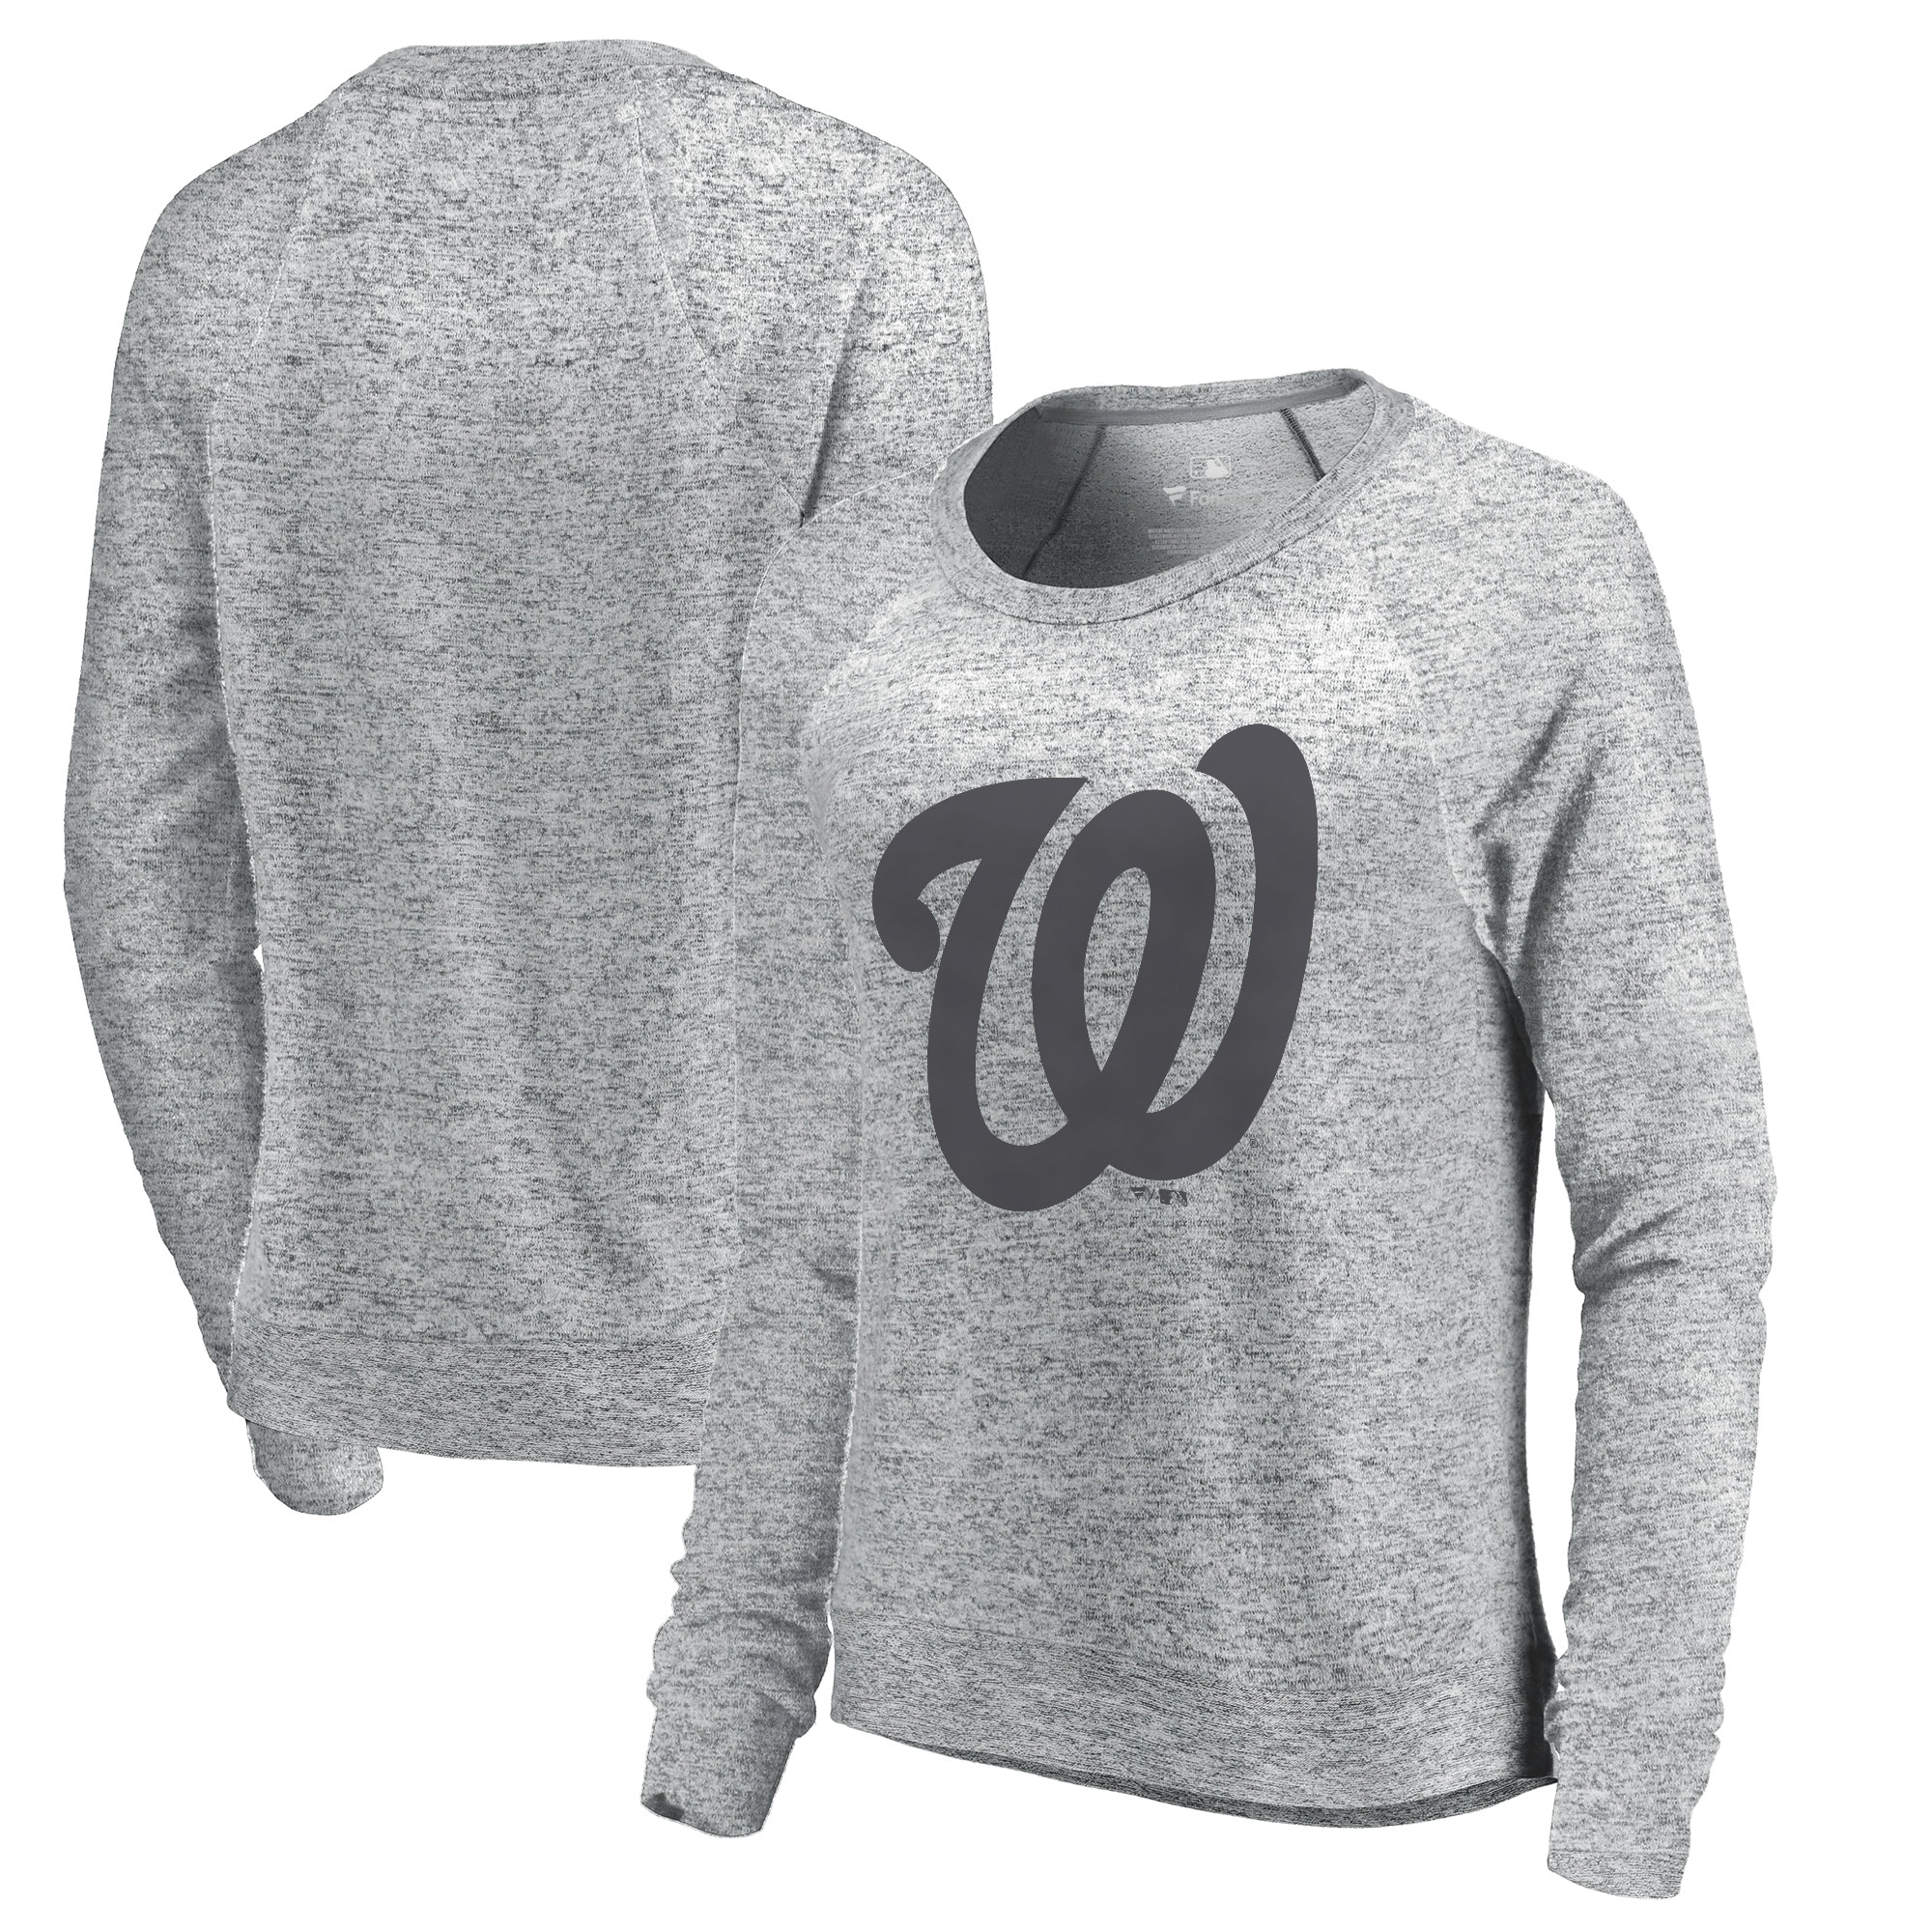 Washington Nationals Let Loose by RNL Women's Cozy Collection Plush Raglan Tri-Blend Sweatshirt - Ash